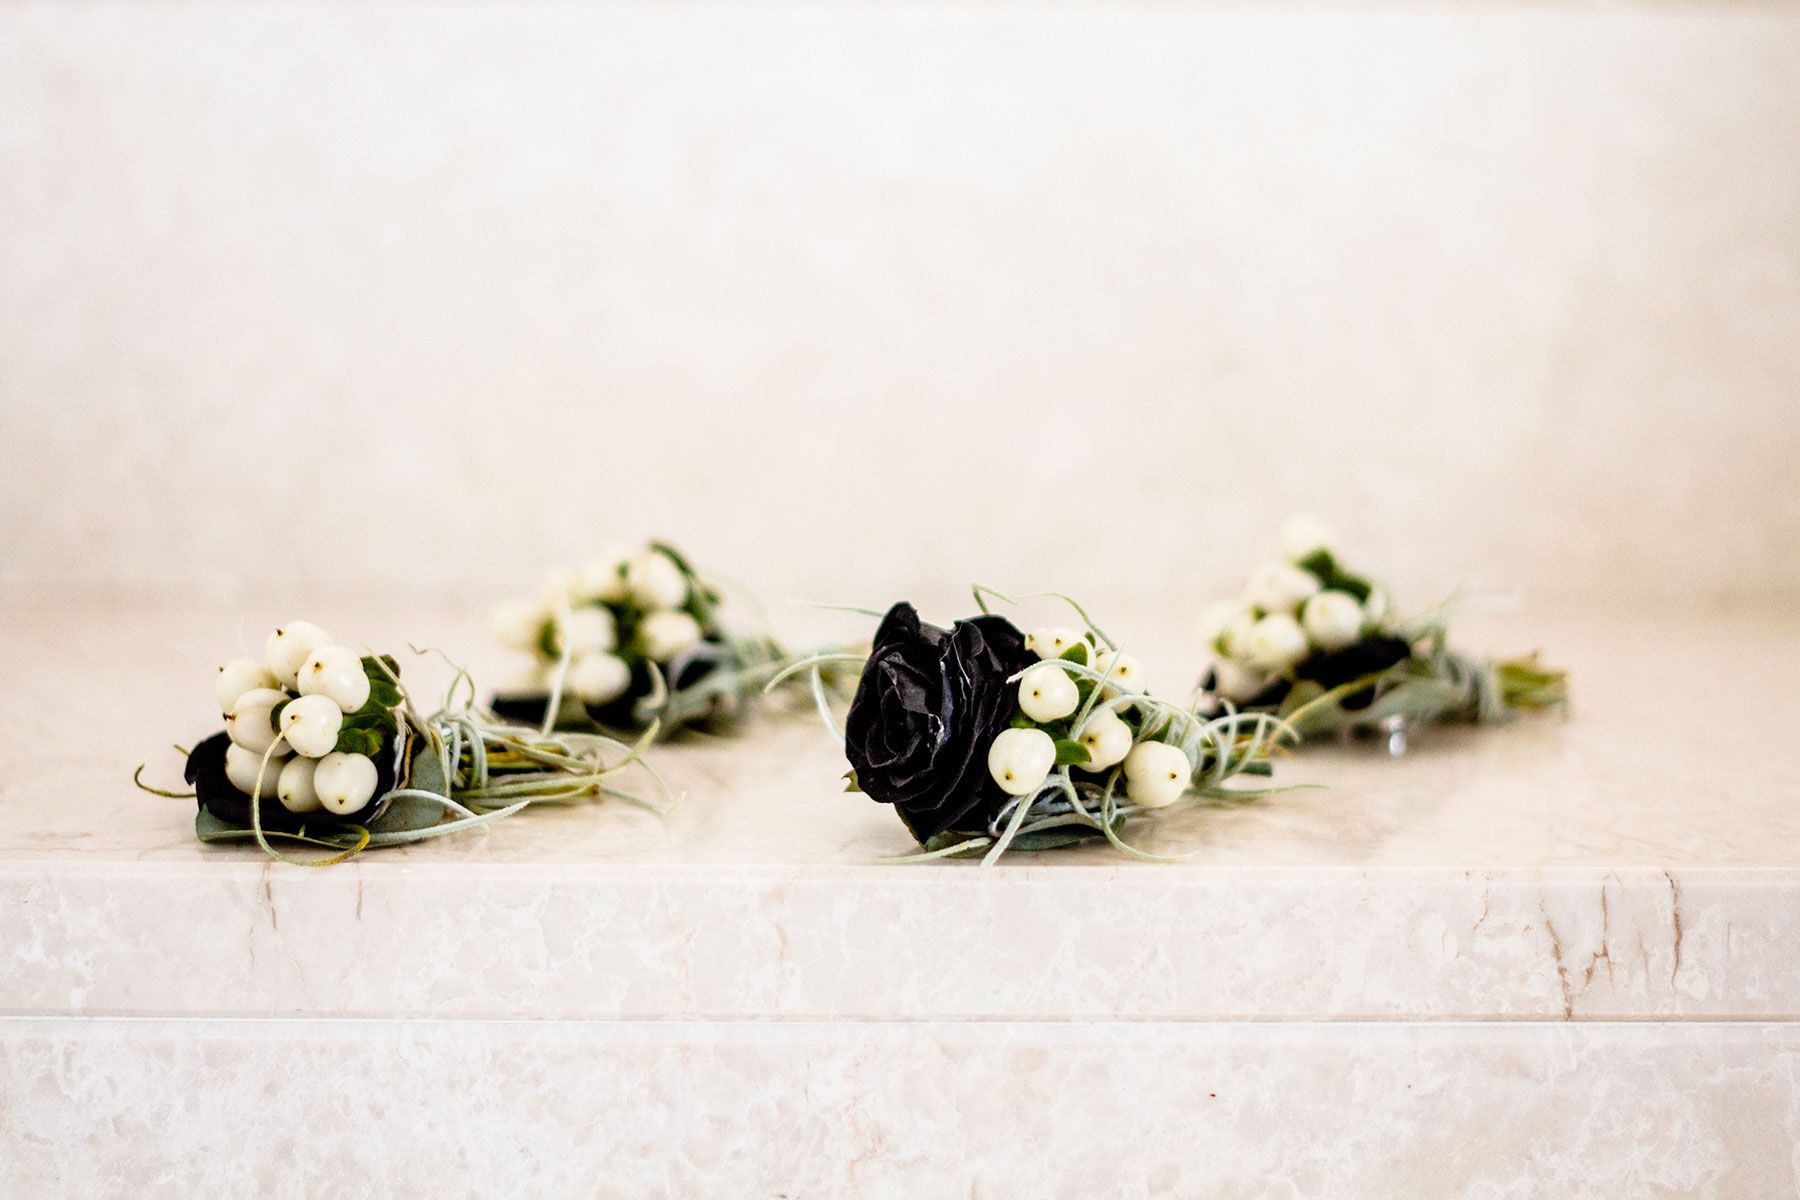 comics themed flowers Italian wedding photography by Italy destination wedding photographer Elizabeth Armitage